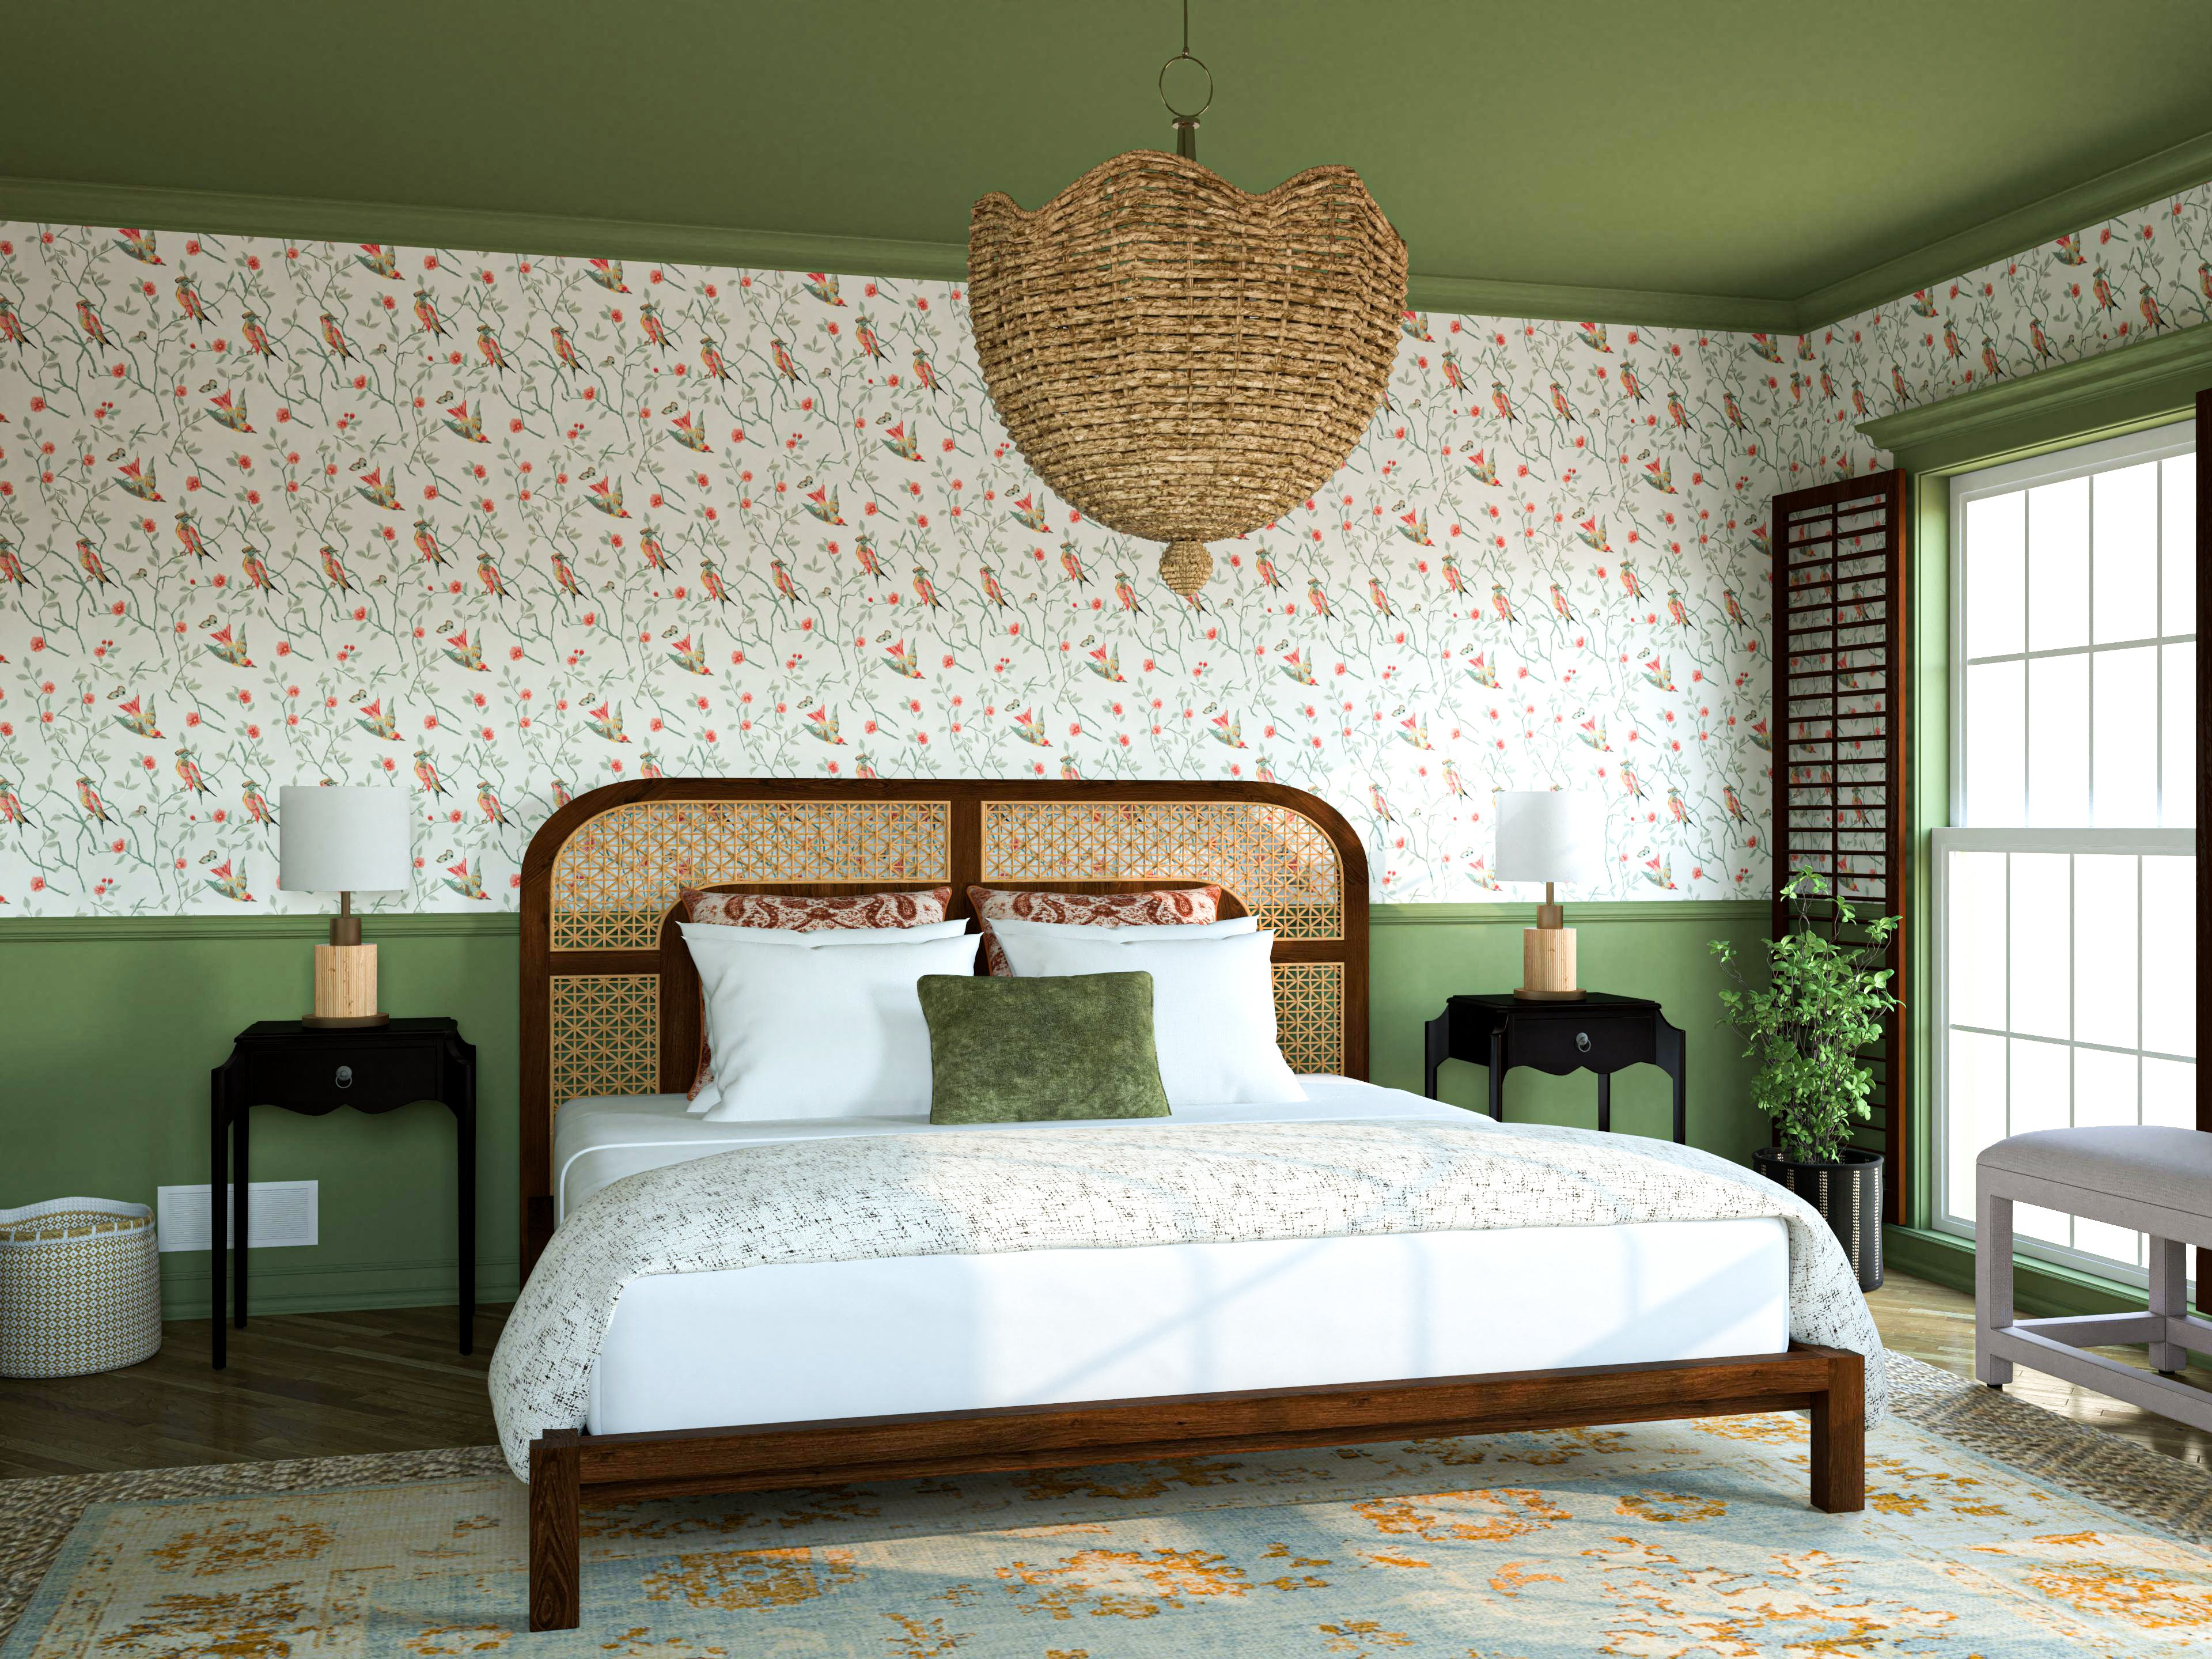 A Charming Engish-Inspired Main Bedroom